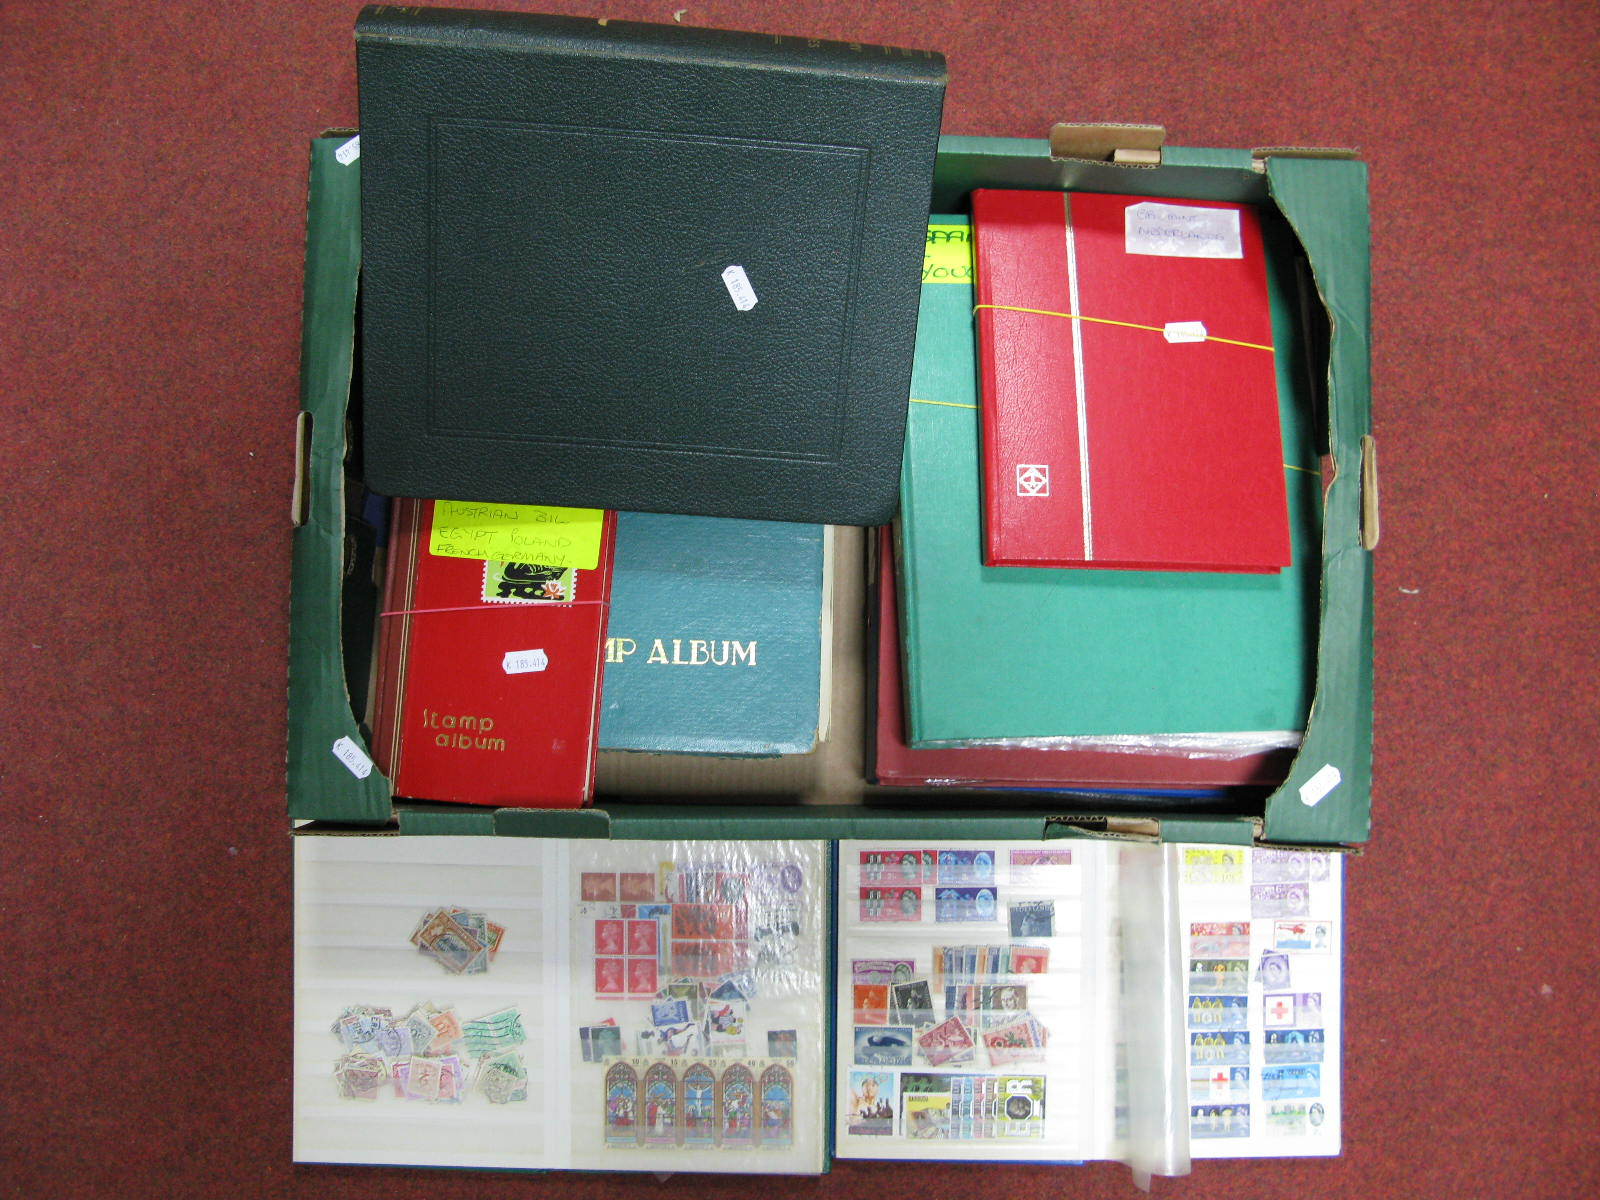 Lot 53 - A Mixed Accumulation of World Stamps in Stockbooks, many European countries represented including